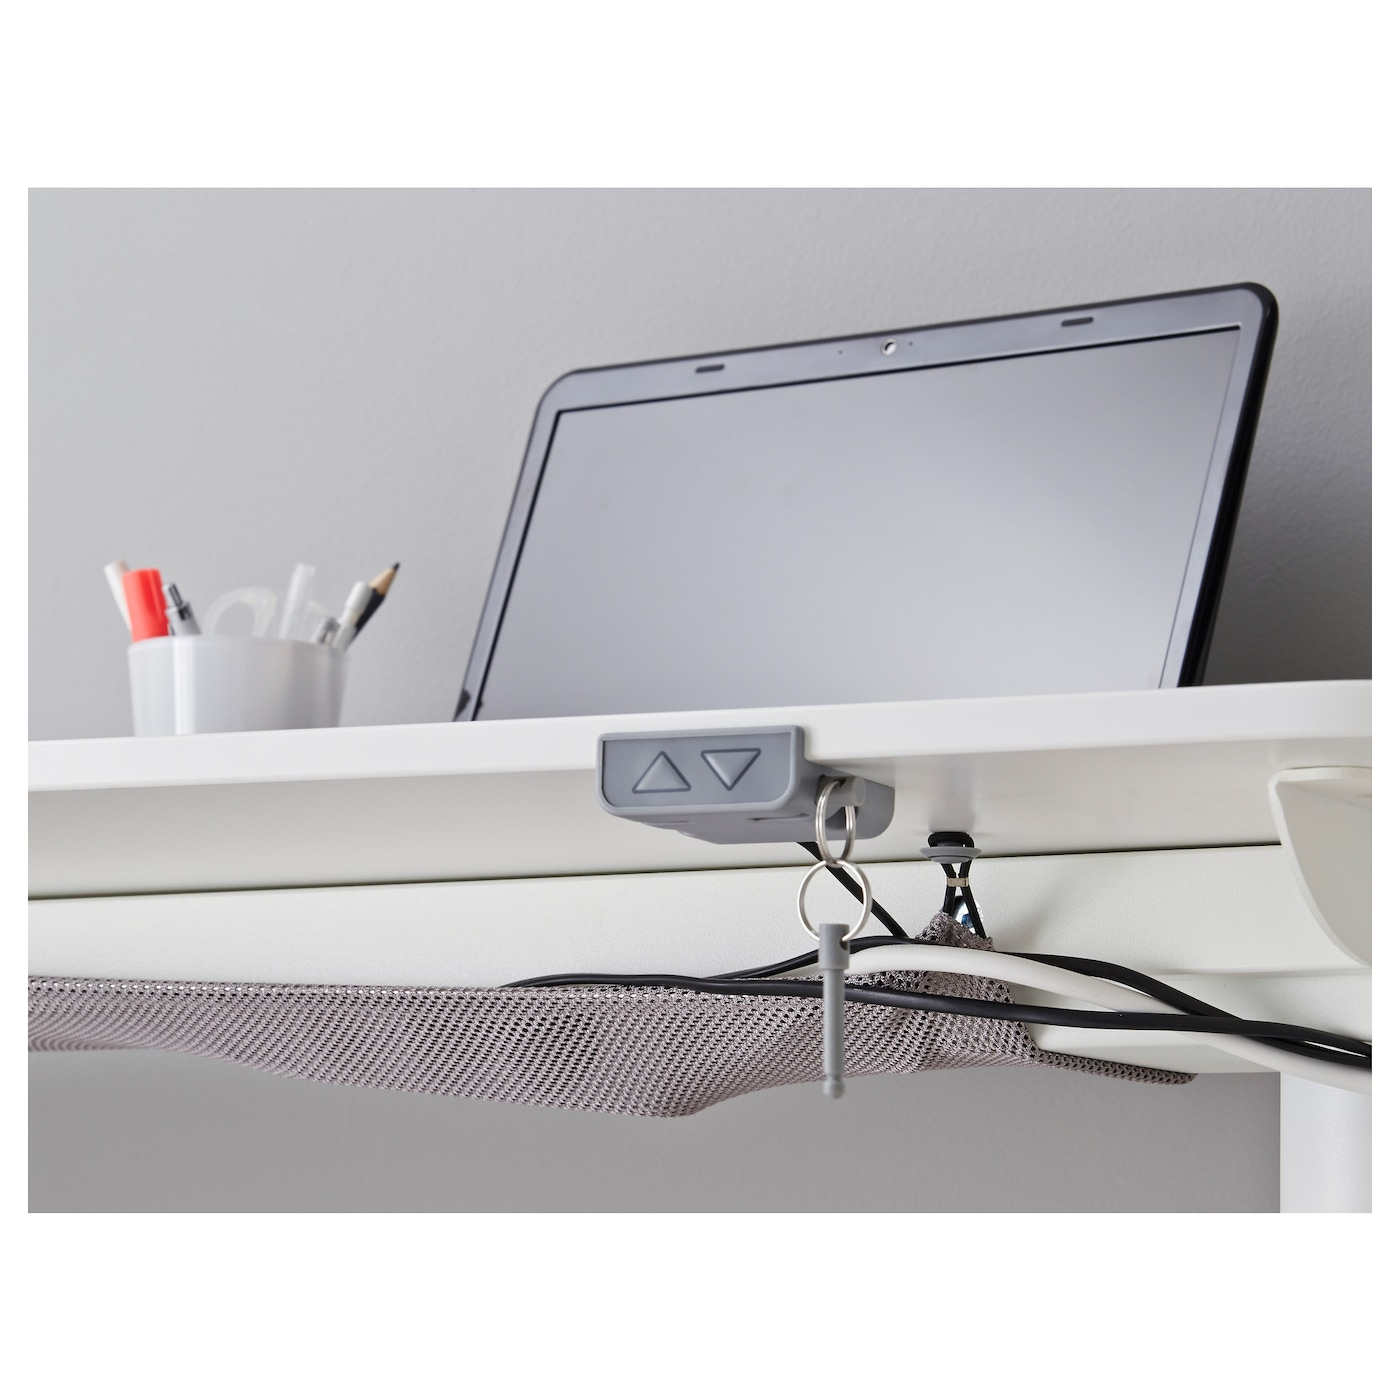 IKEA BEKANT desk sit/stand with screen Holds pins; also serves as notice board.